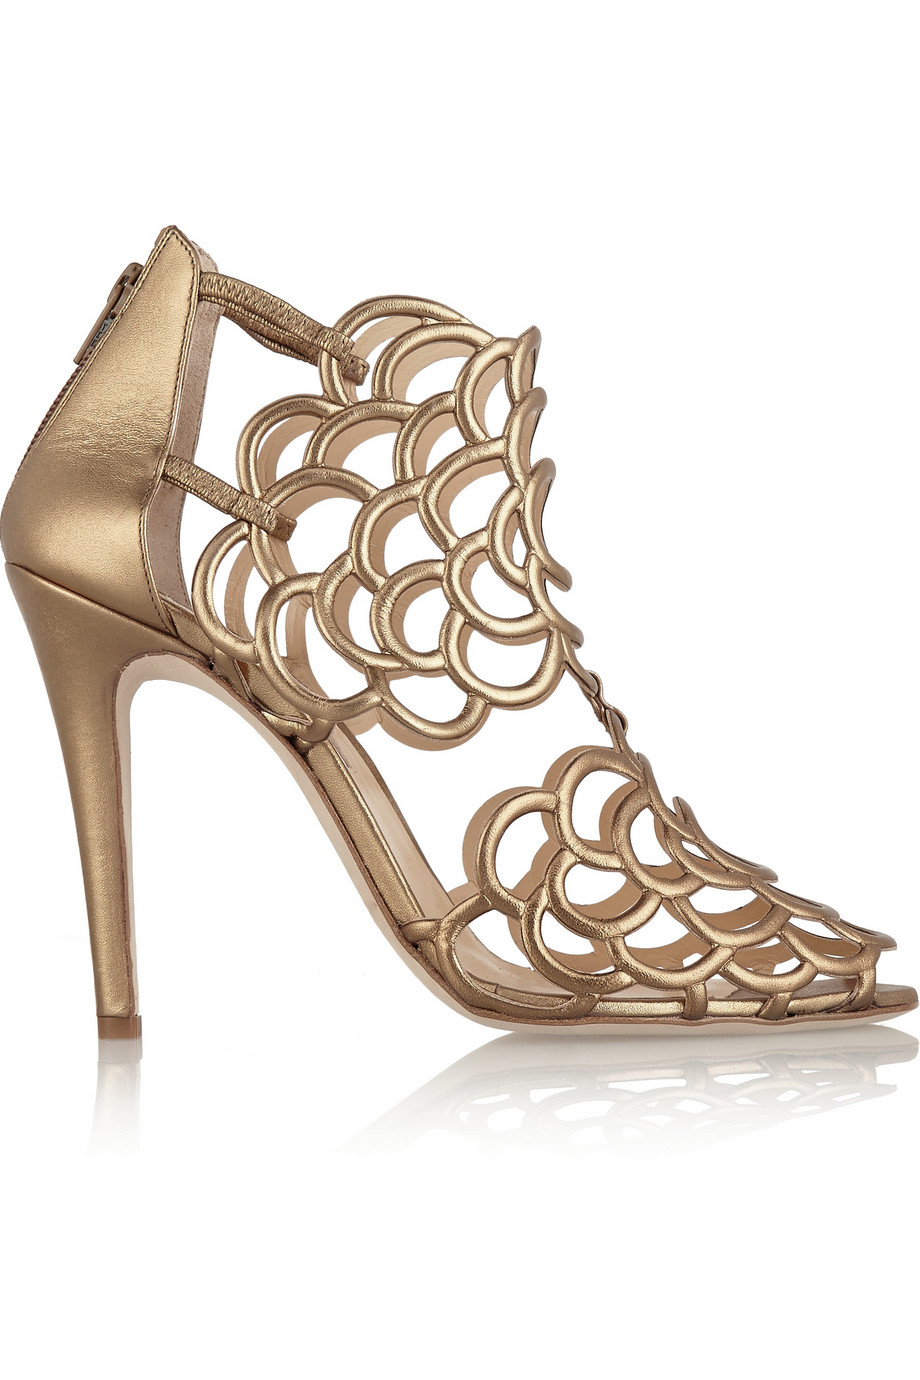 Oscar de la renta gladia cutout leather sandals – 65% at the outnet.com